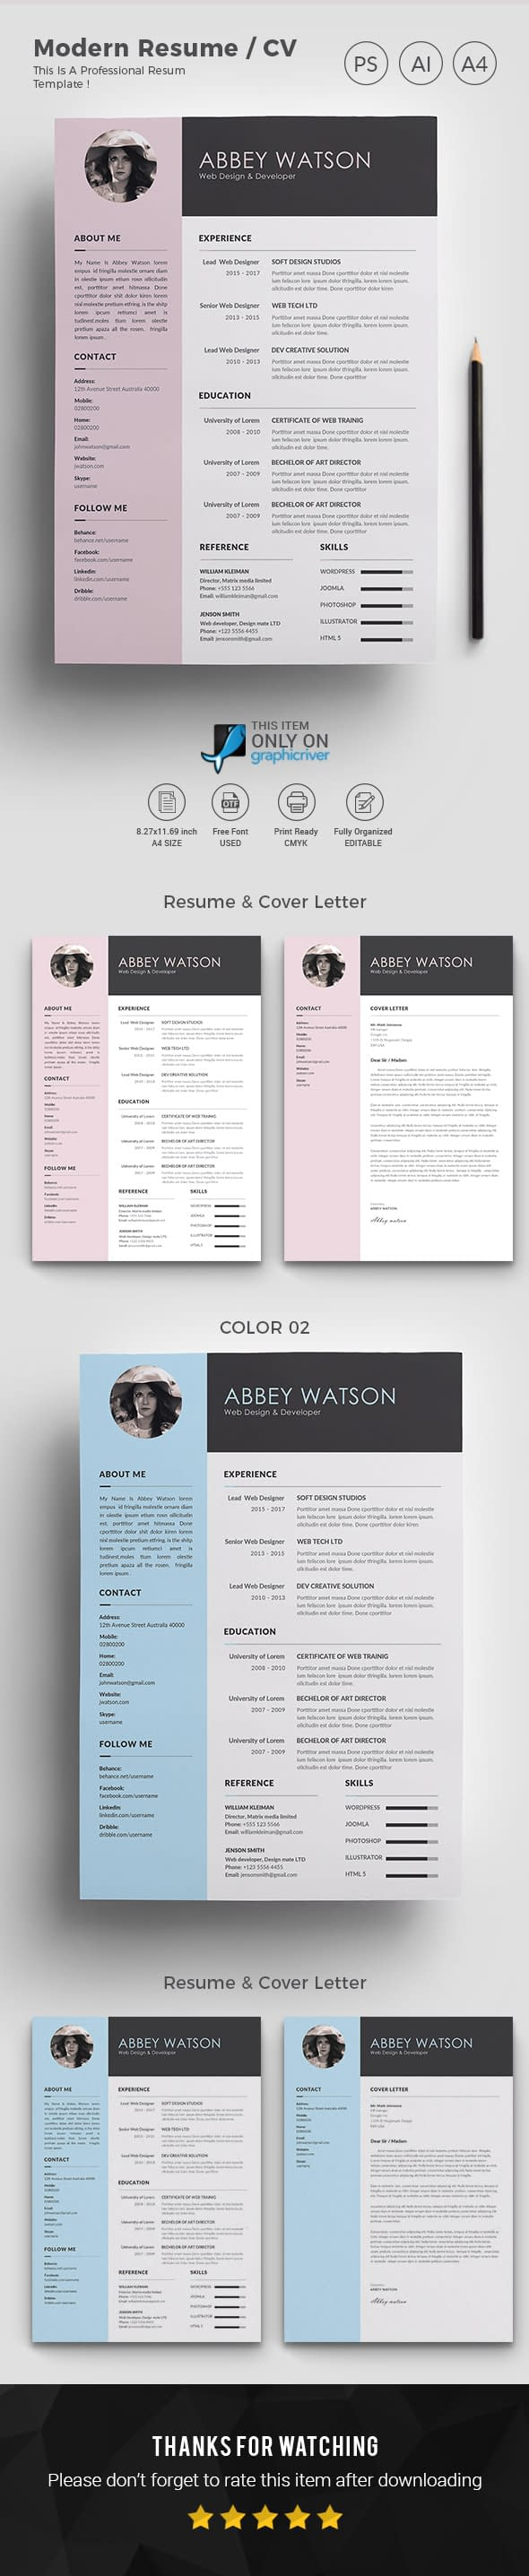 Resume Word Template / CV Template